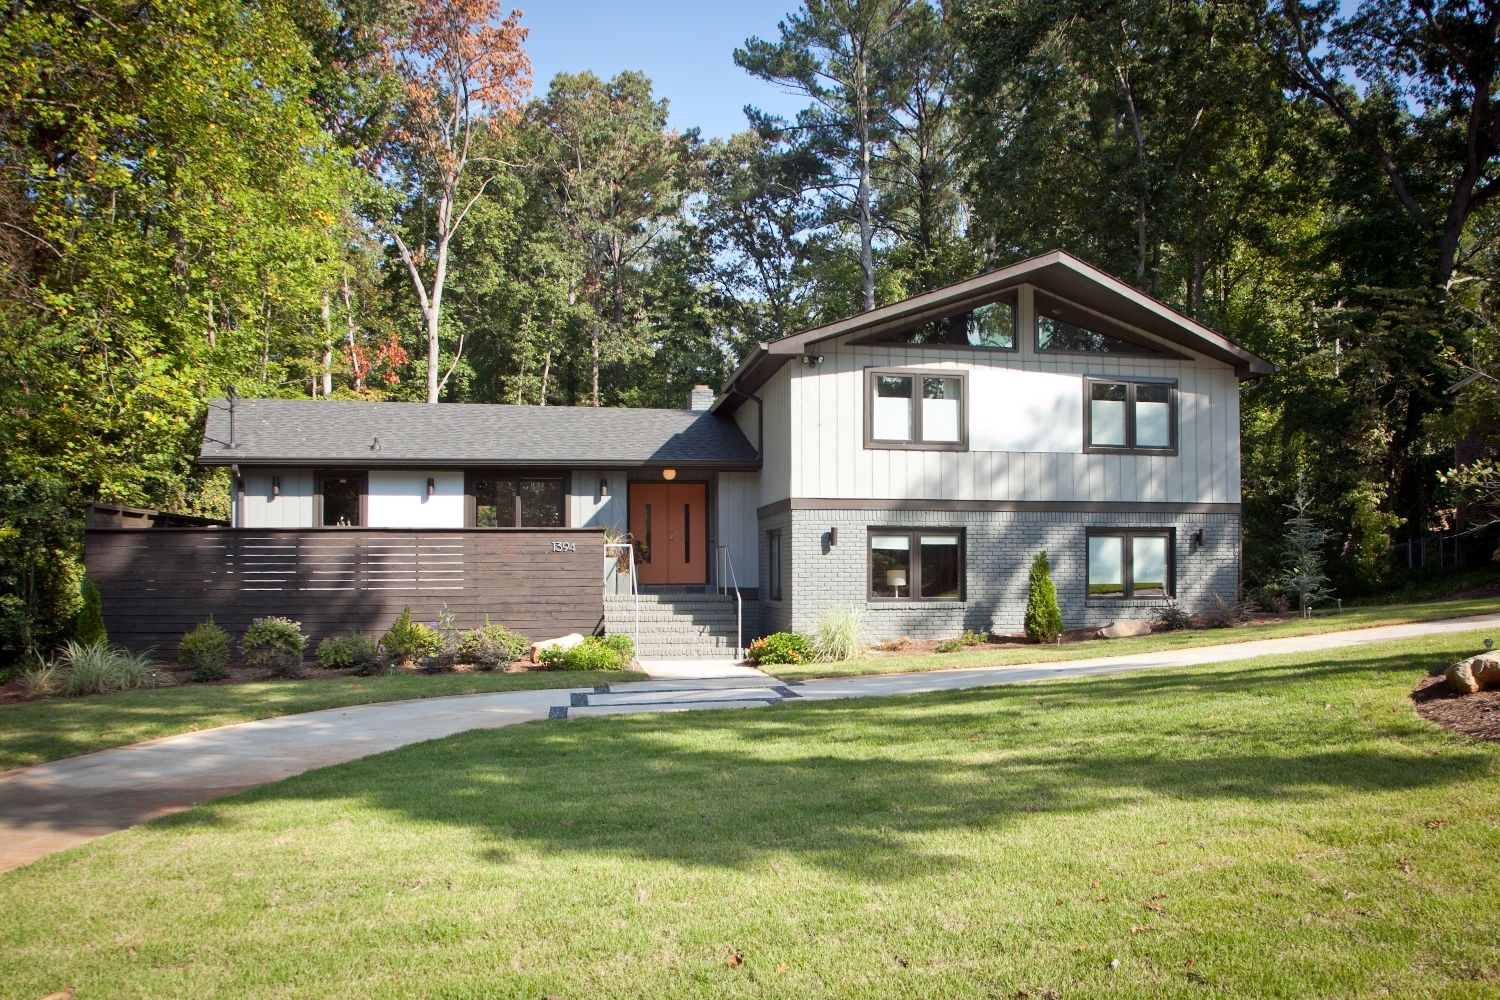 Split level exterior remodel picture gallery 1394 ragley hall road atlanta mid century modern - Exterior home remodel ...